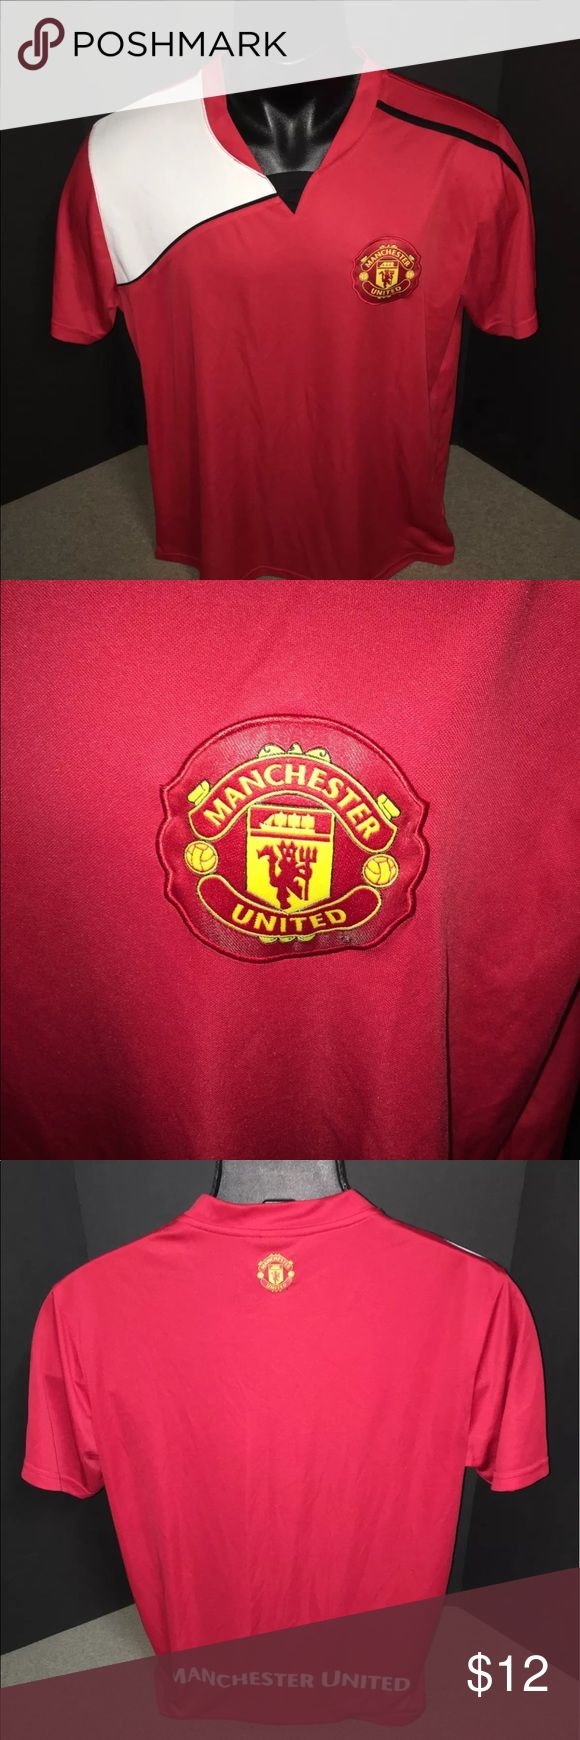 Manchester United Men's Size Large Soccer Jersey In excellent condition  No rips, tears or stains   Manchester United Official Merchandise  Soccer Jersey  Red, black and white  Logos are printed  Men's size Large ManU LtD  Other